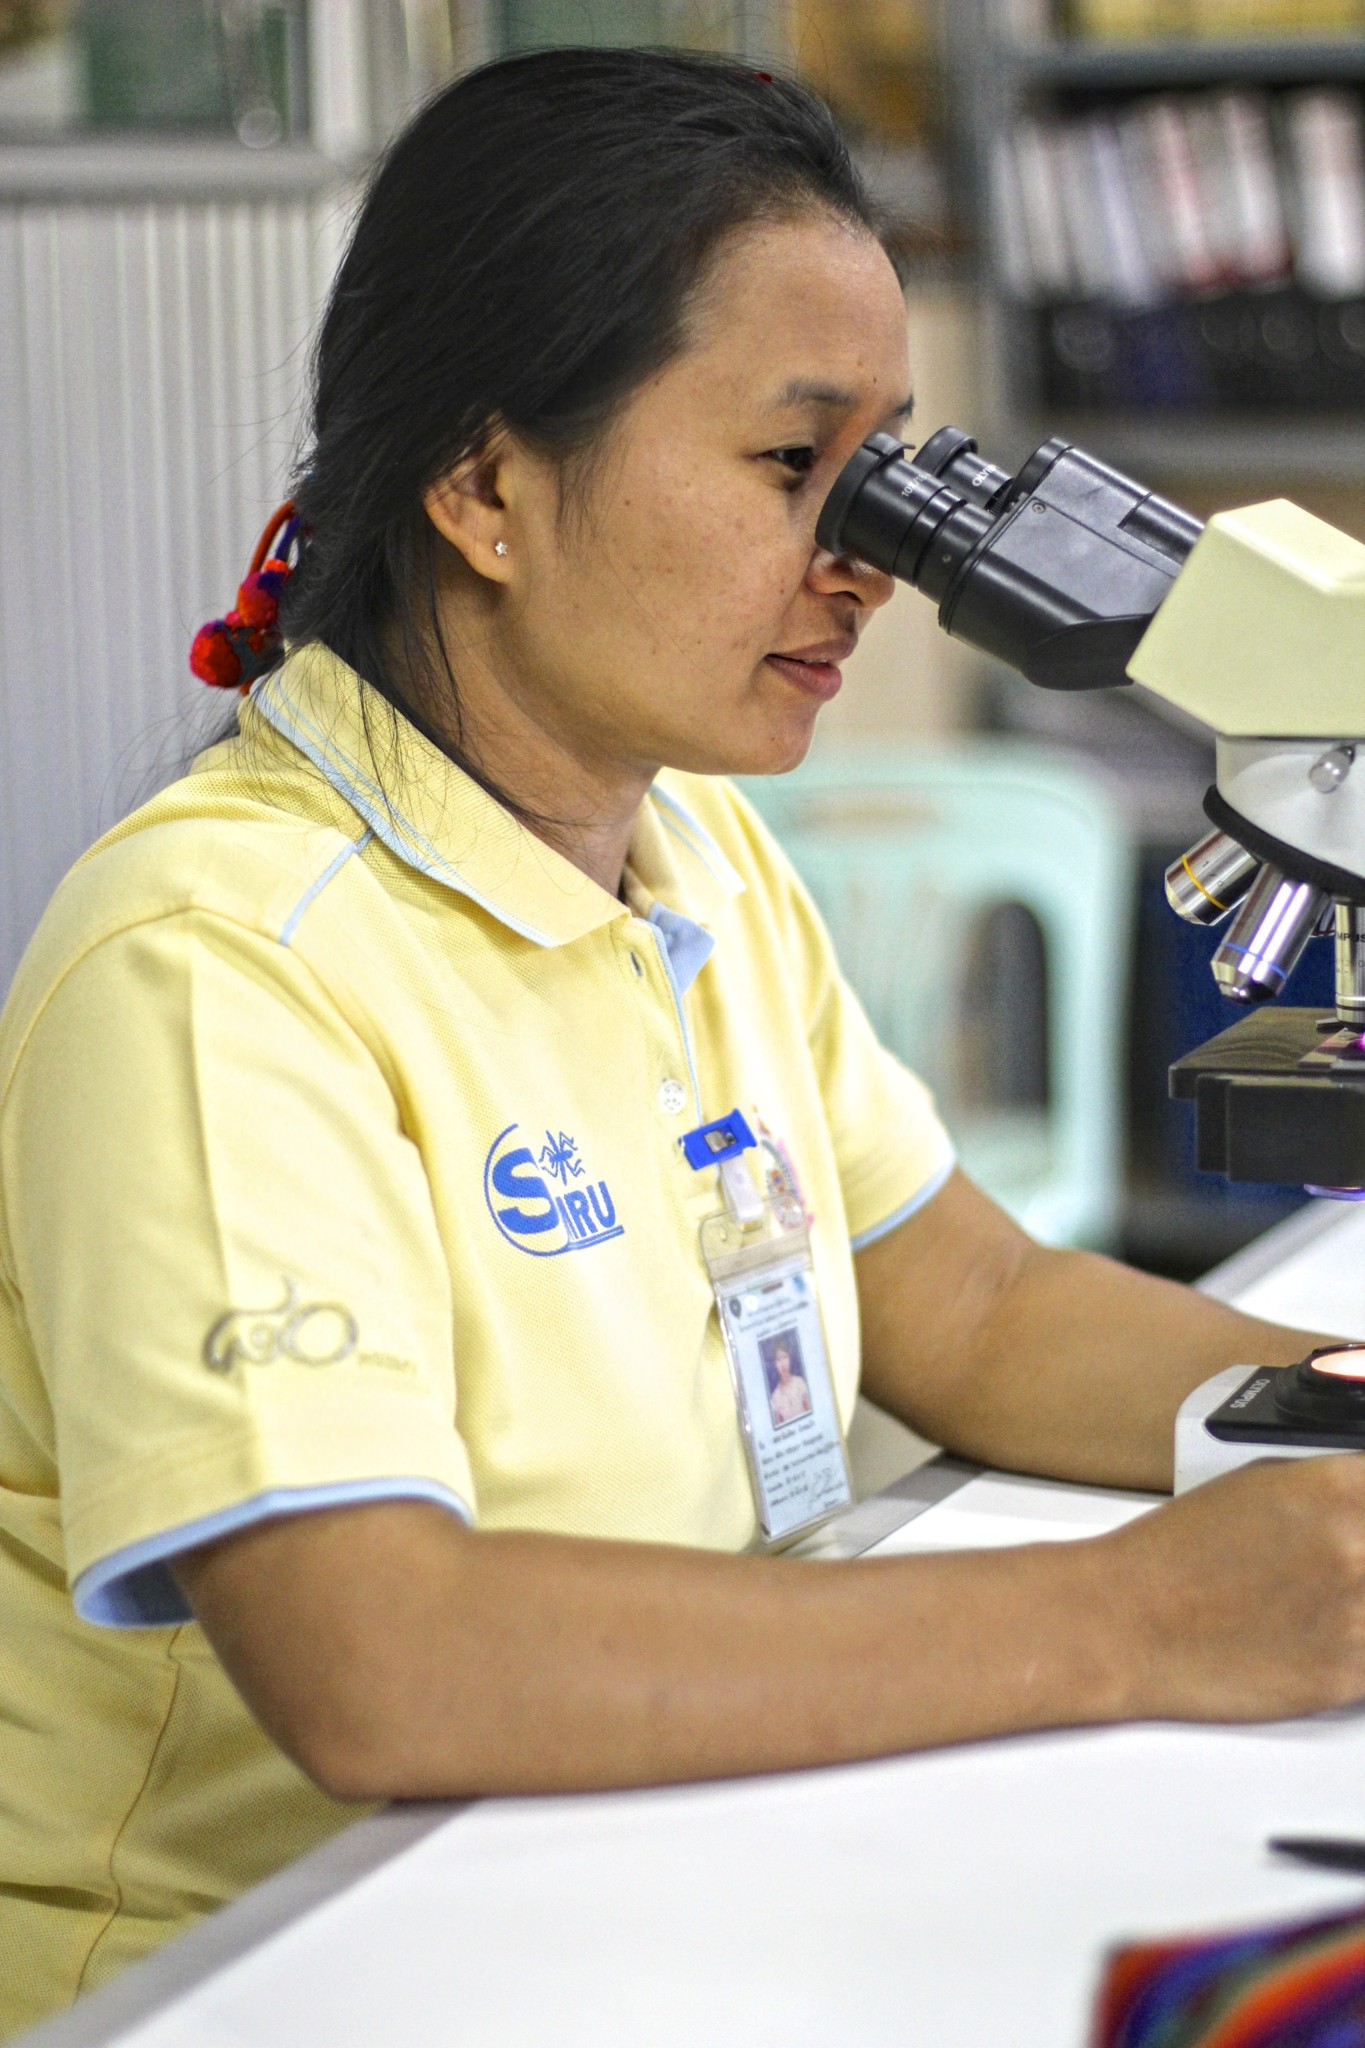 Young Malaria Microscopist is working in the Shoklo Malaria Research Unit at the border of Thailand Mynammar.  She  reads the stained blood slides under microscopy for malaria parasites.  She properly record all the test results and treatments in patient register.